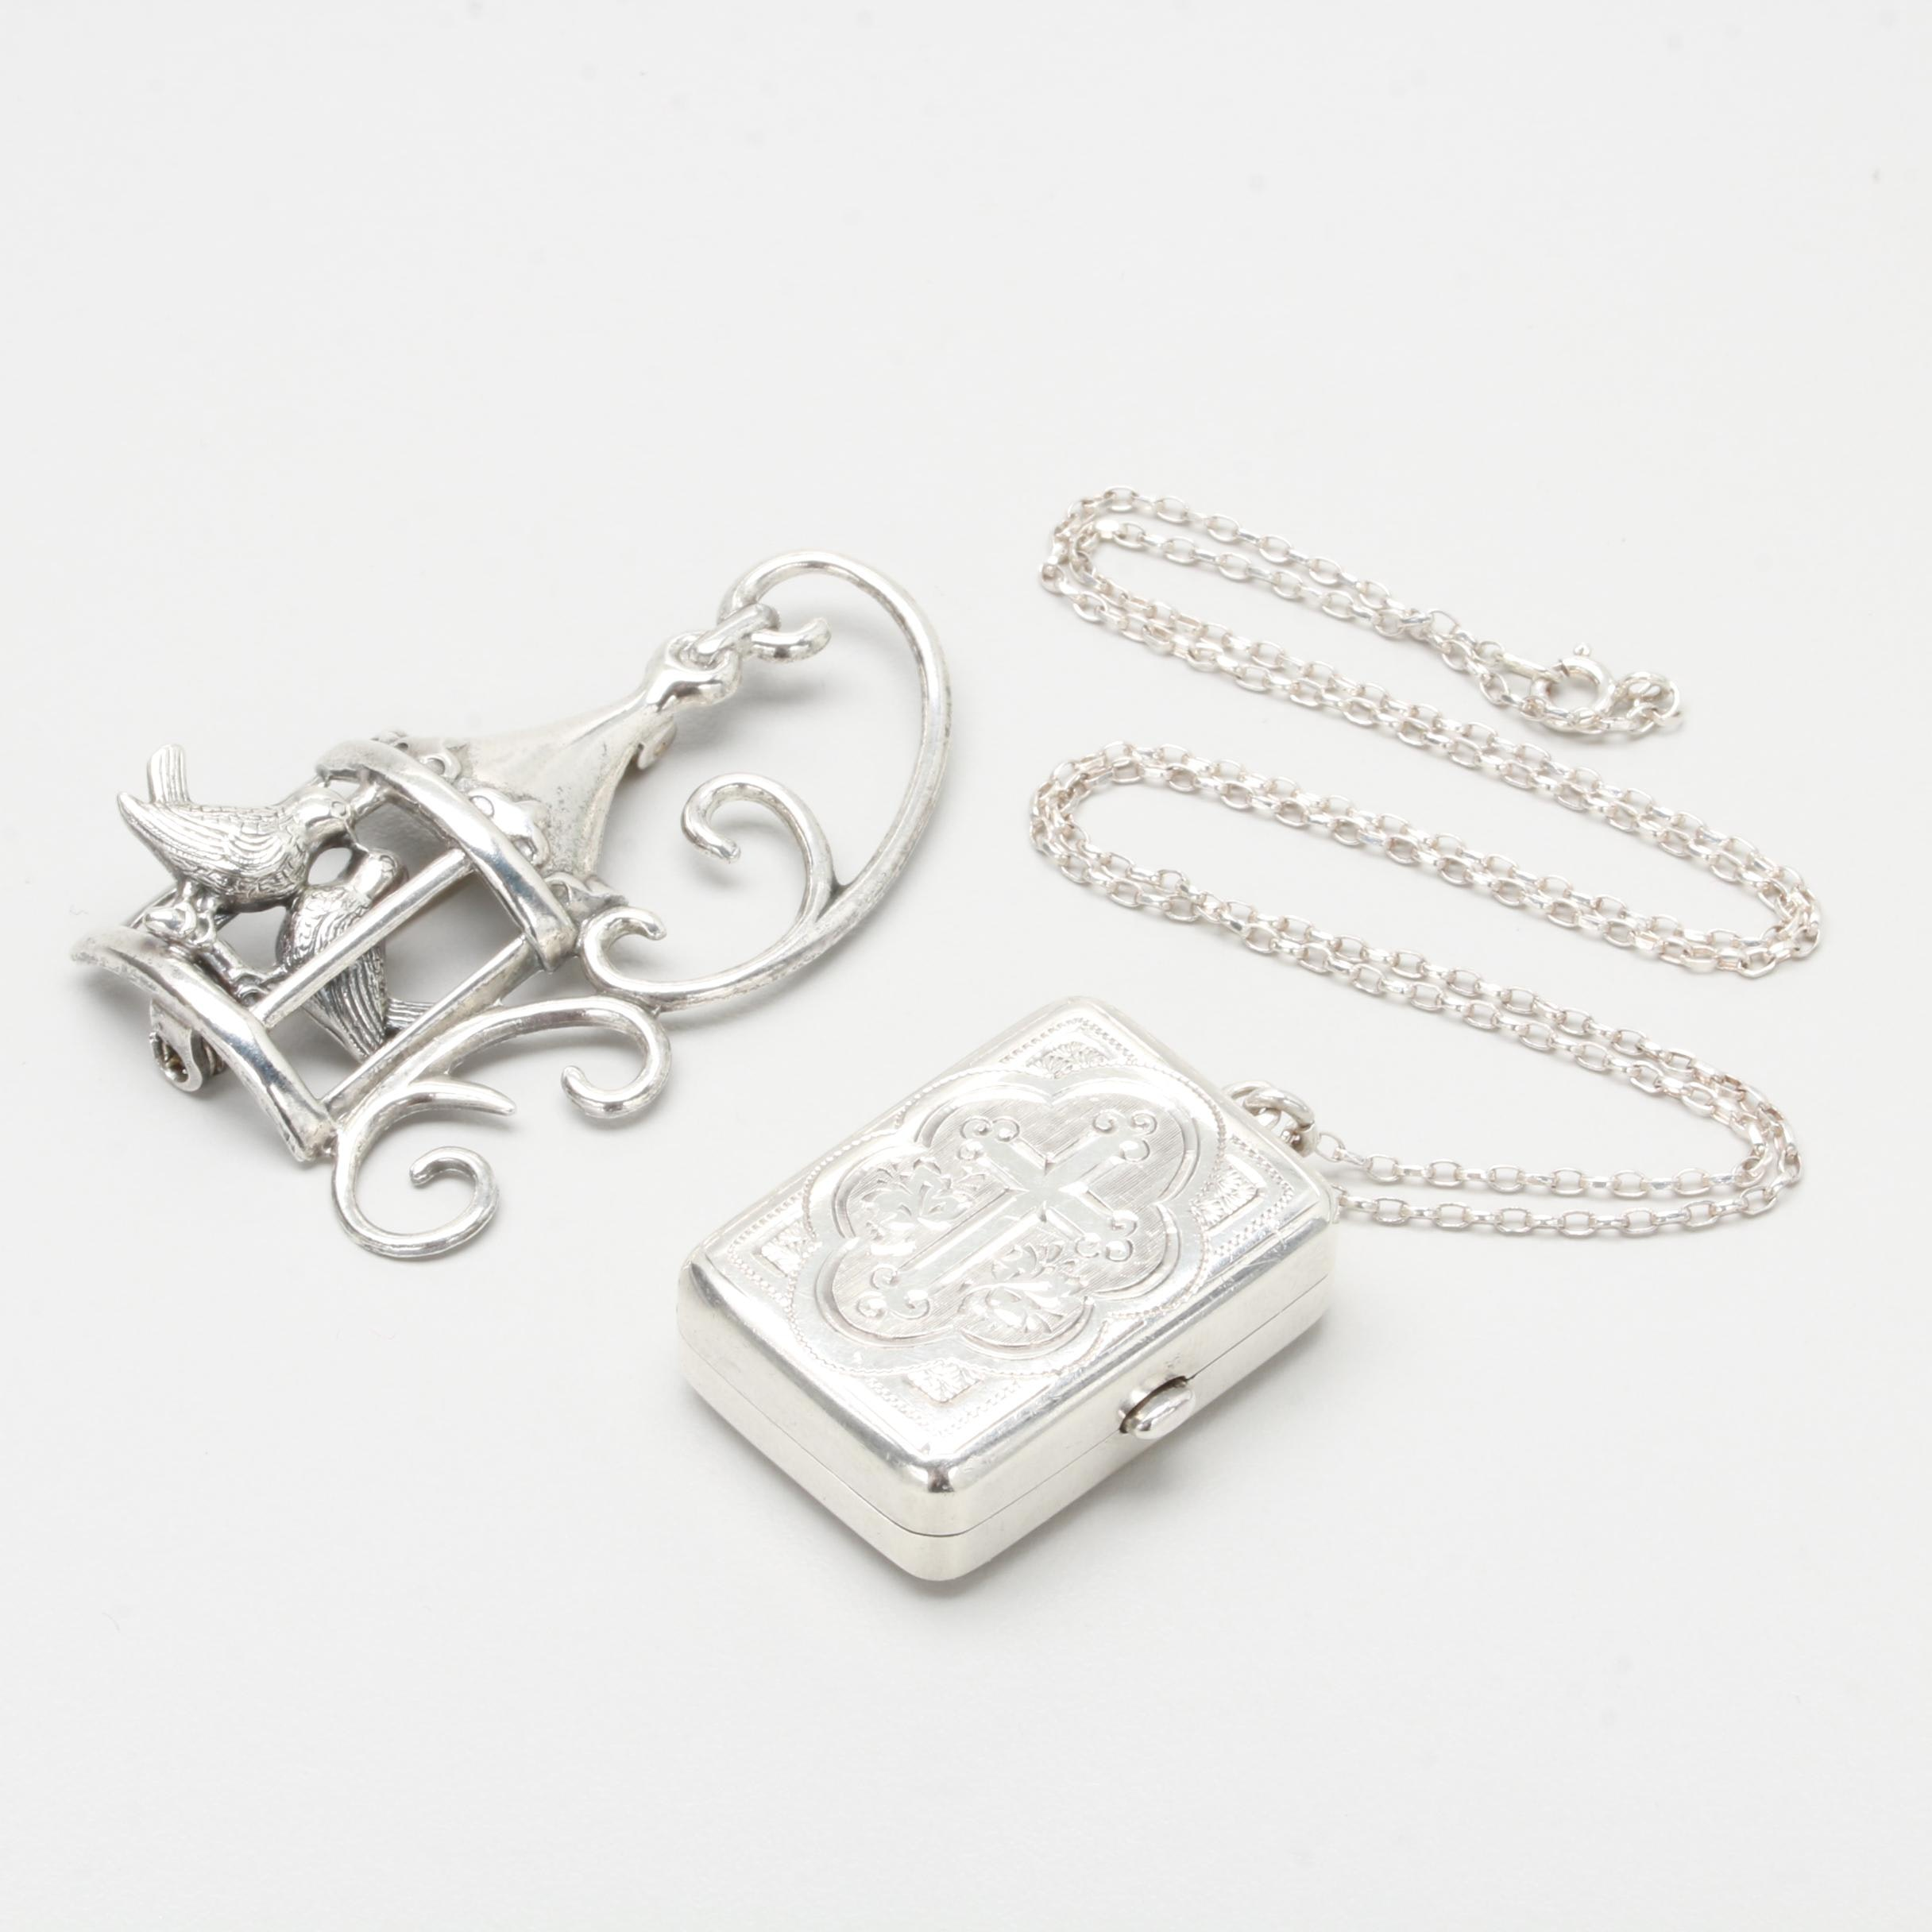 Sterling Silver Pillbox Pendant Necklace and Brooch